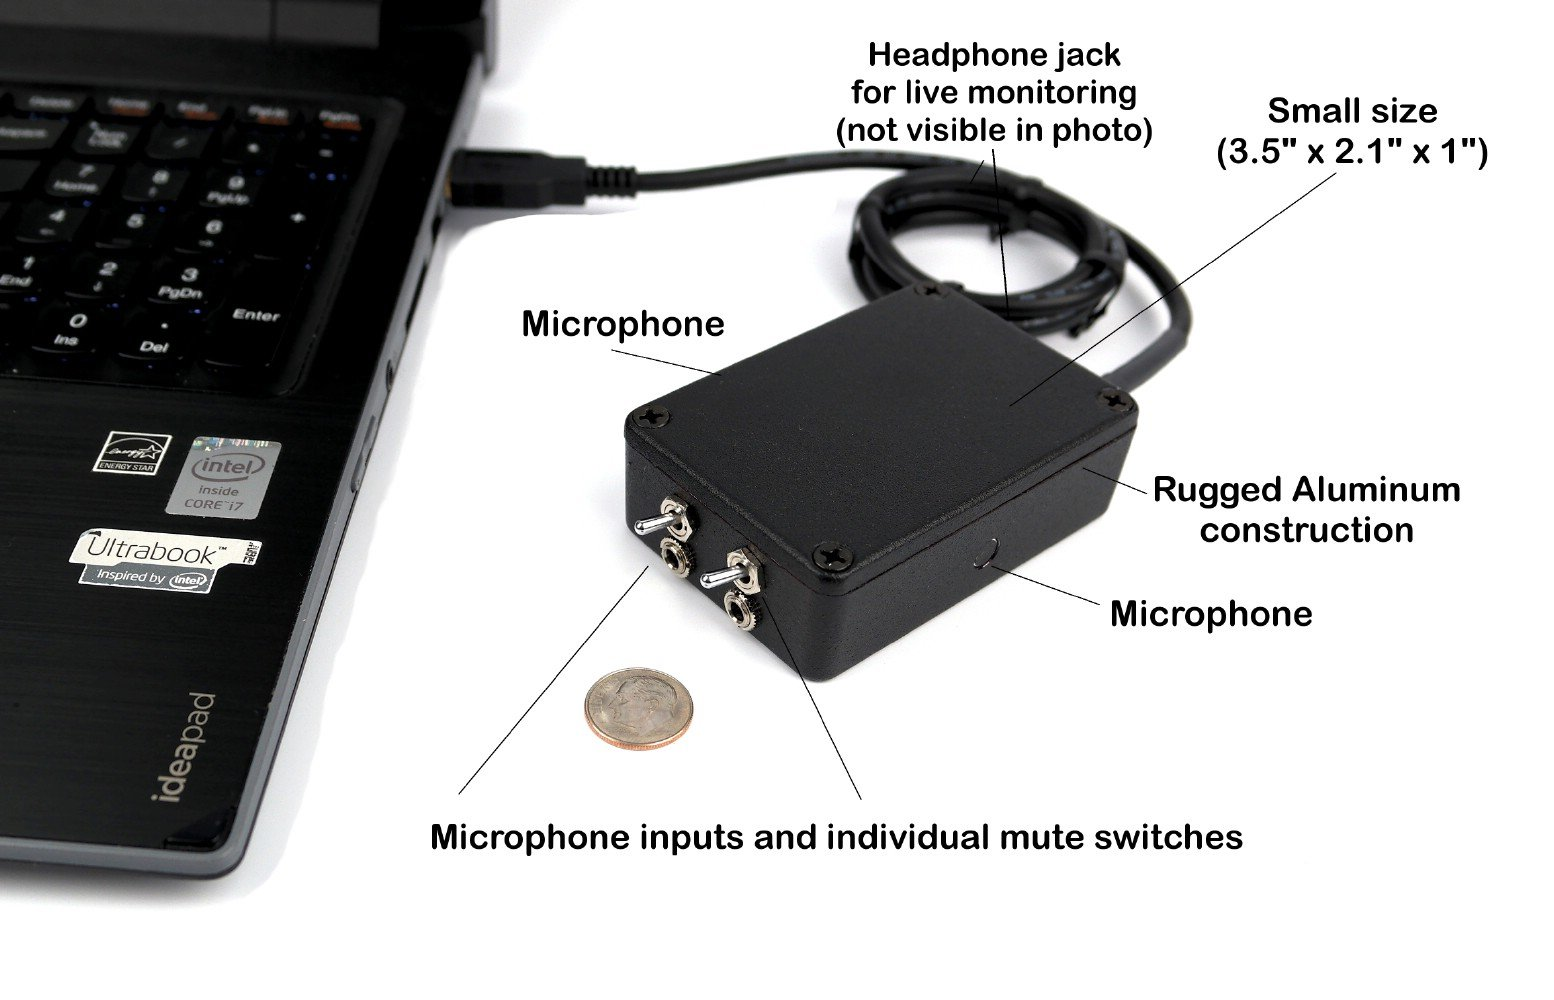 SP-USB-MIC-MODEL-10 - Sound Professionals - Ultra High Gain Mono/Stereo USB multiple microphone system and headphone amplifier w/advanced active room noise filters.